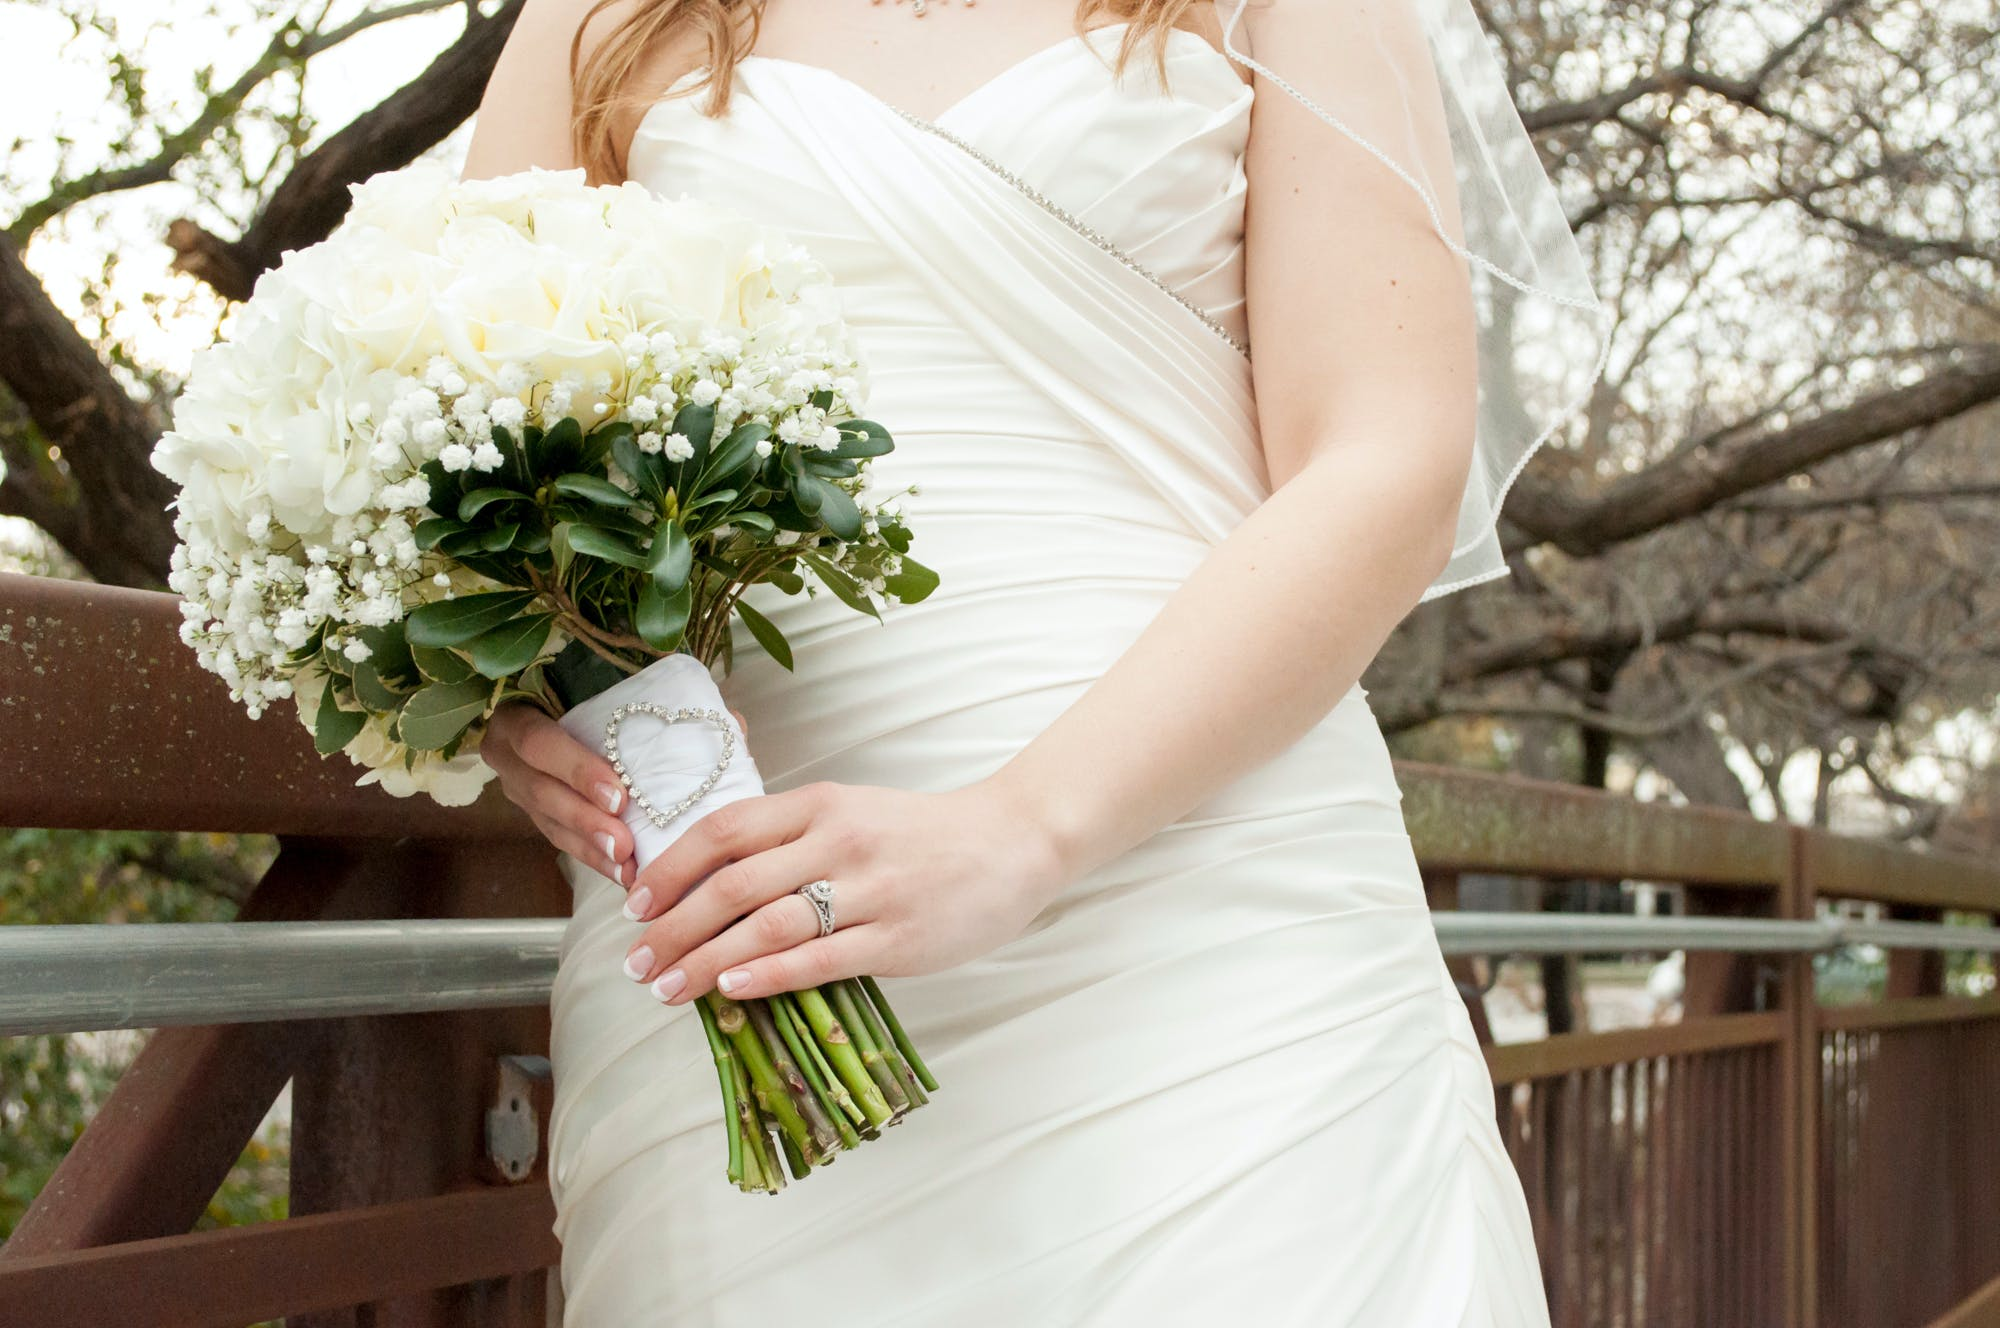 Woman Wearing White Wedding Gown While Holding Flowers